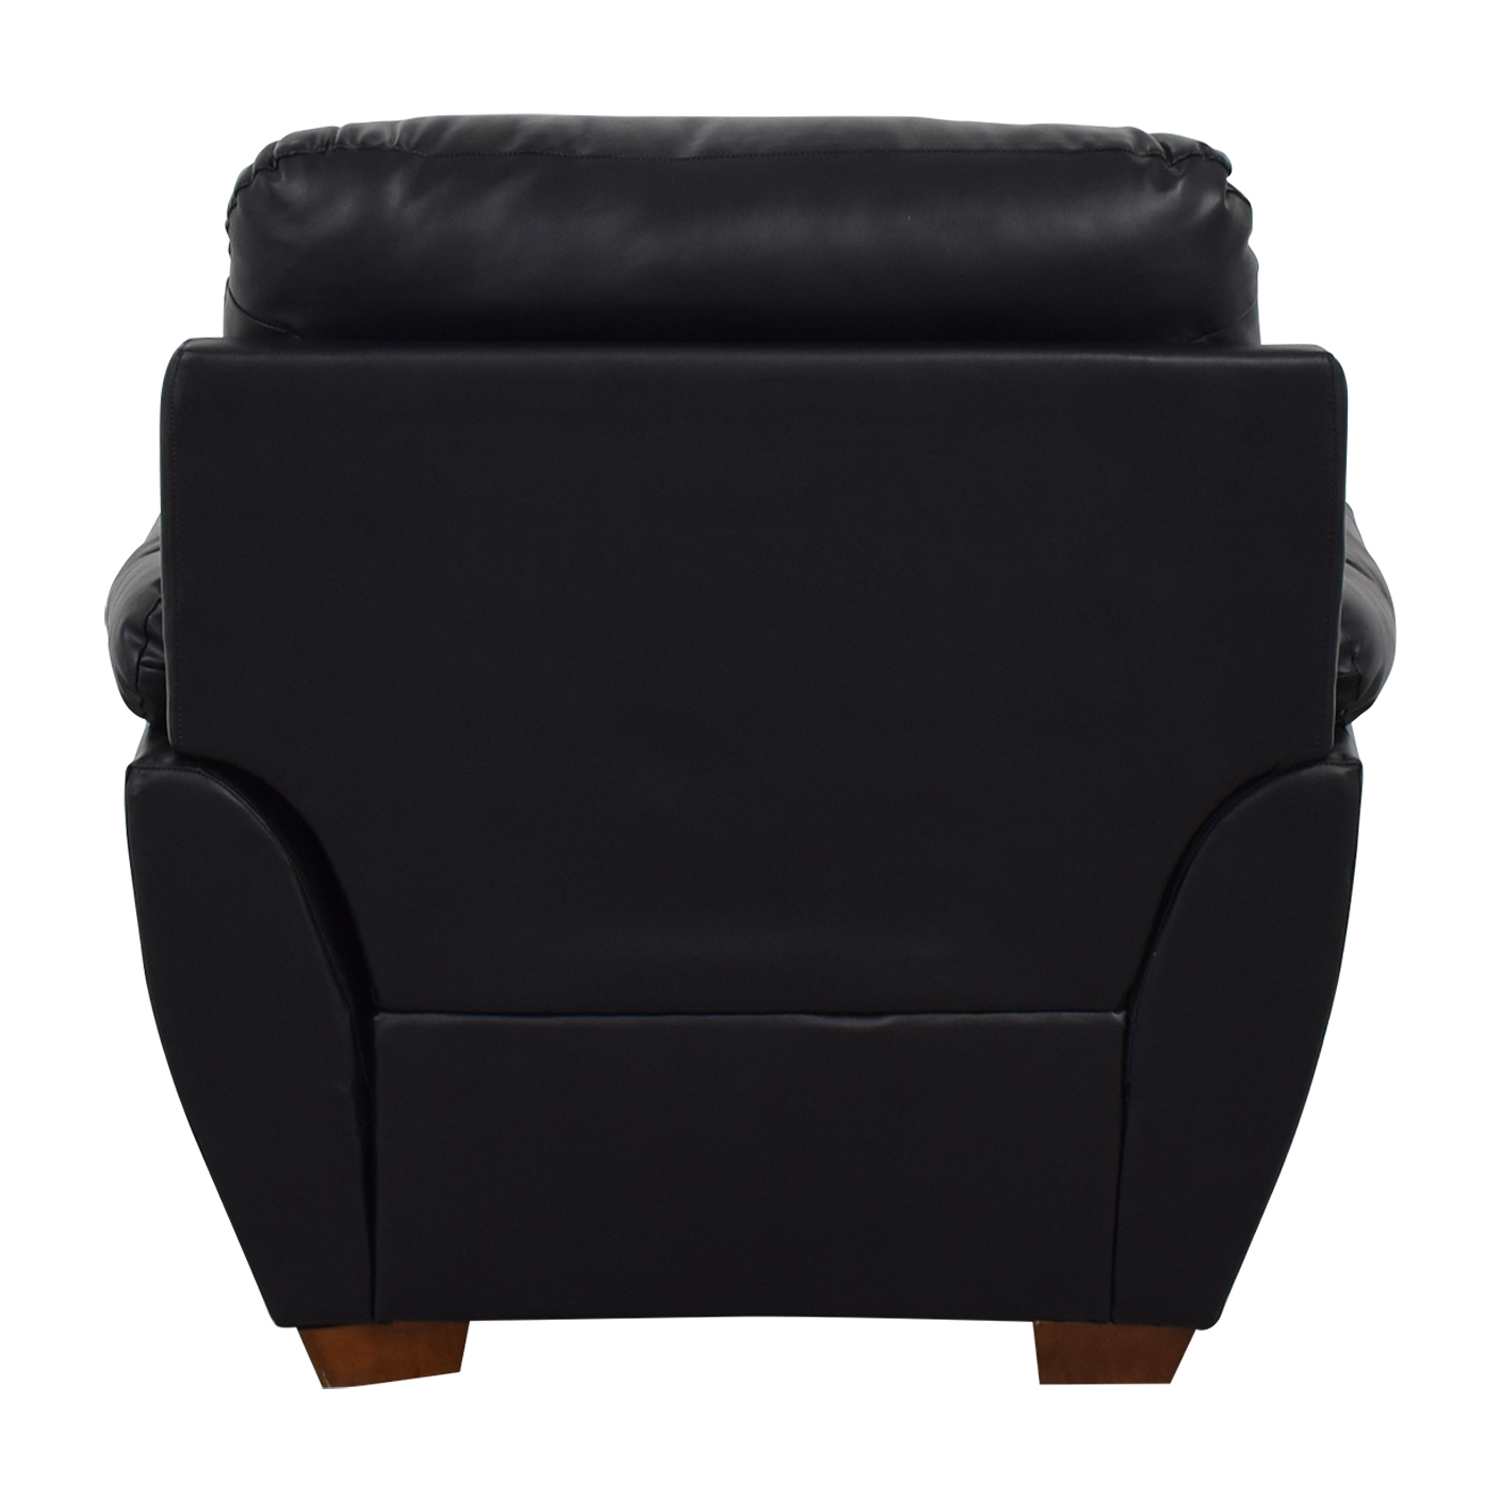 Jennifer Furniture Jennifer Furniture Wilton Black Accent Chair dimensions